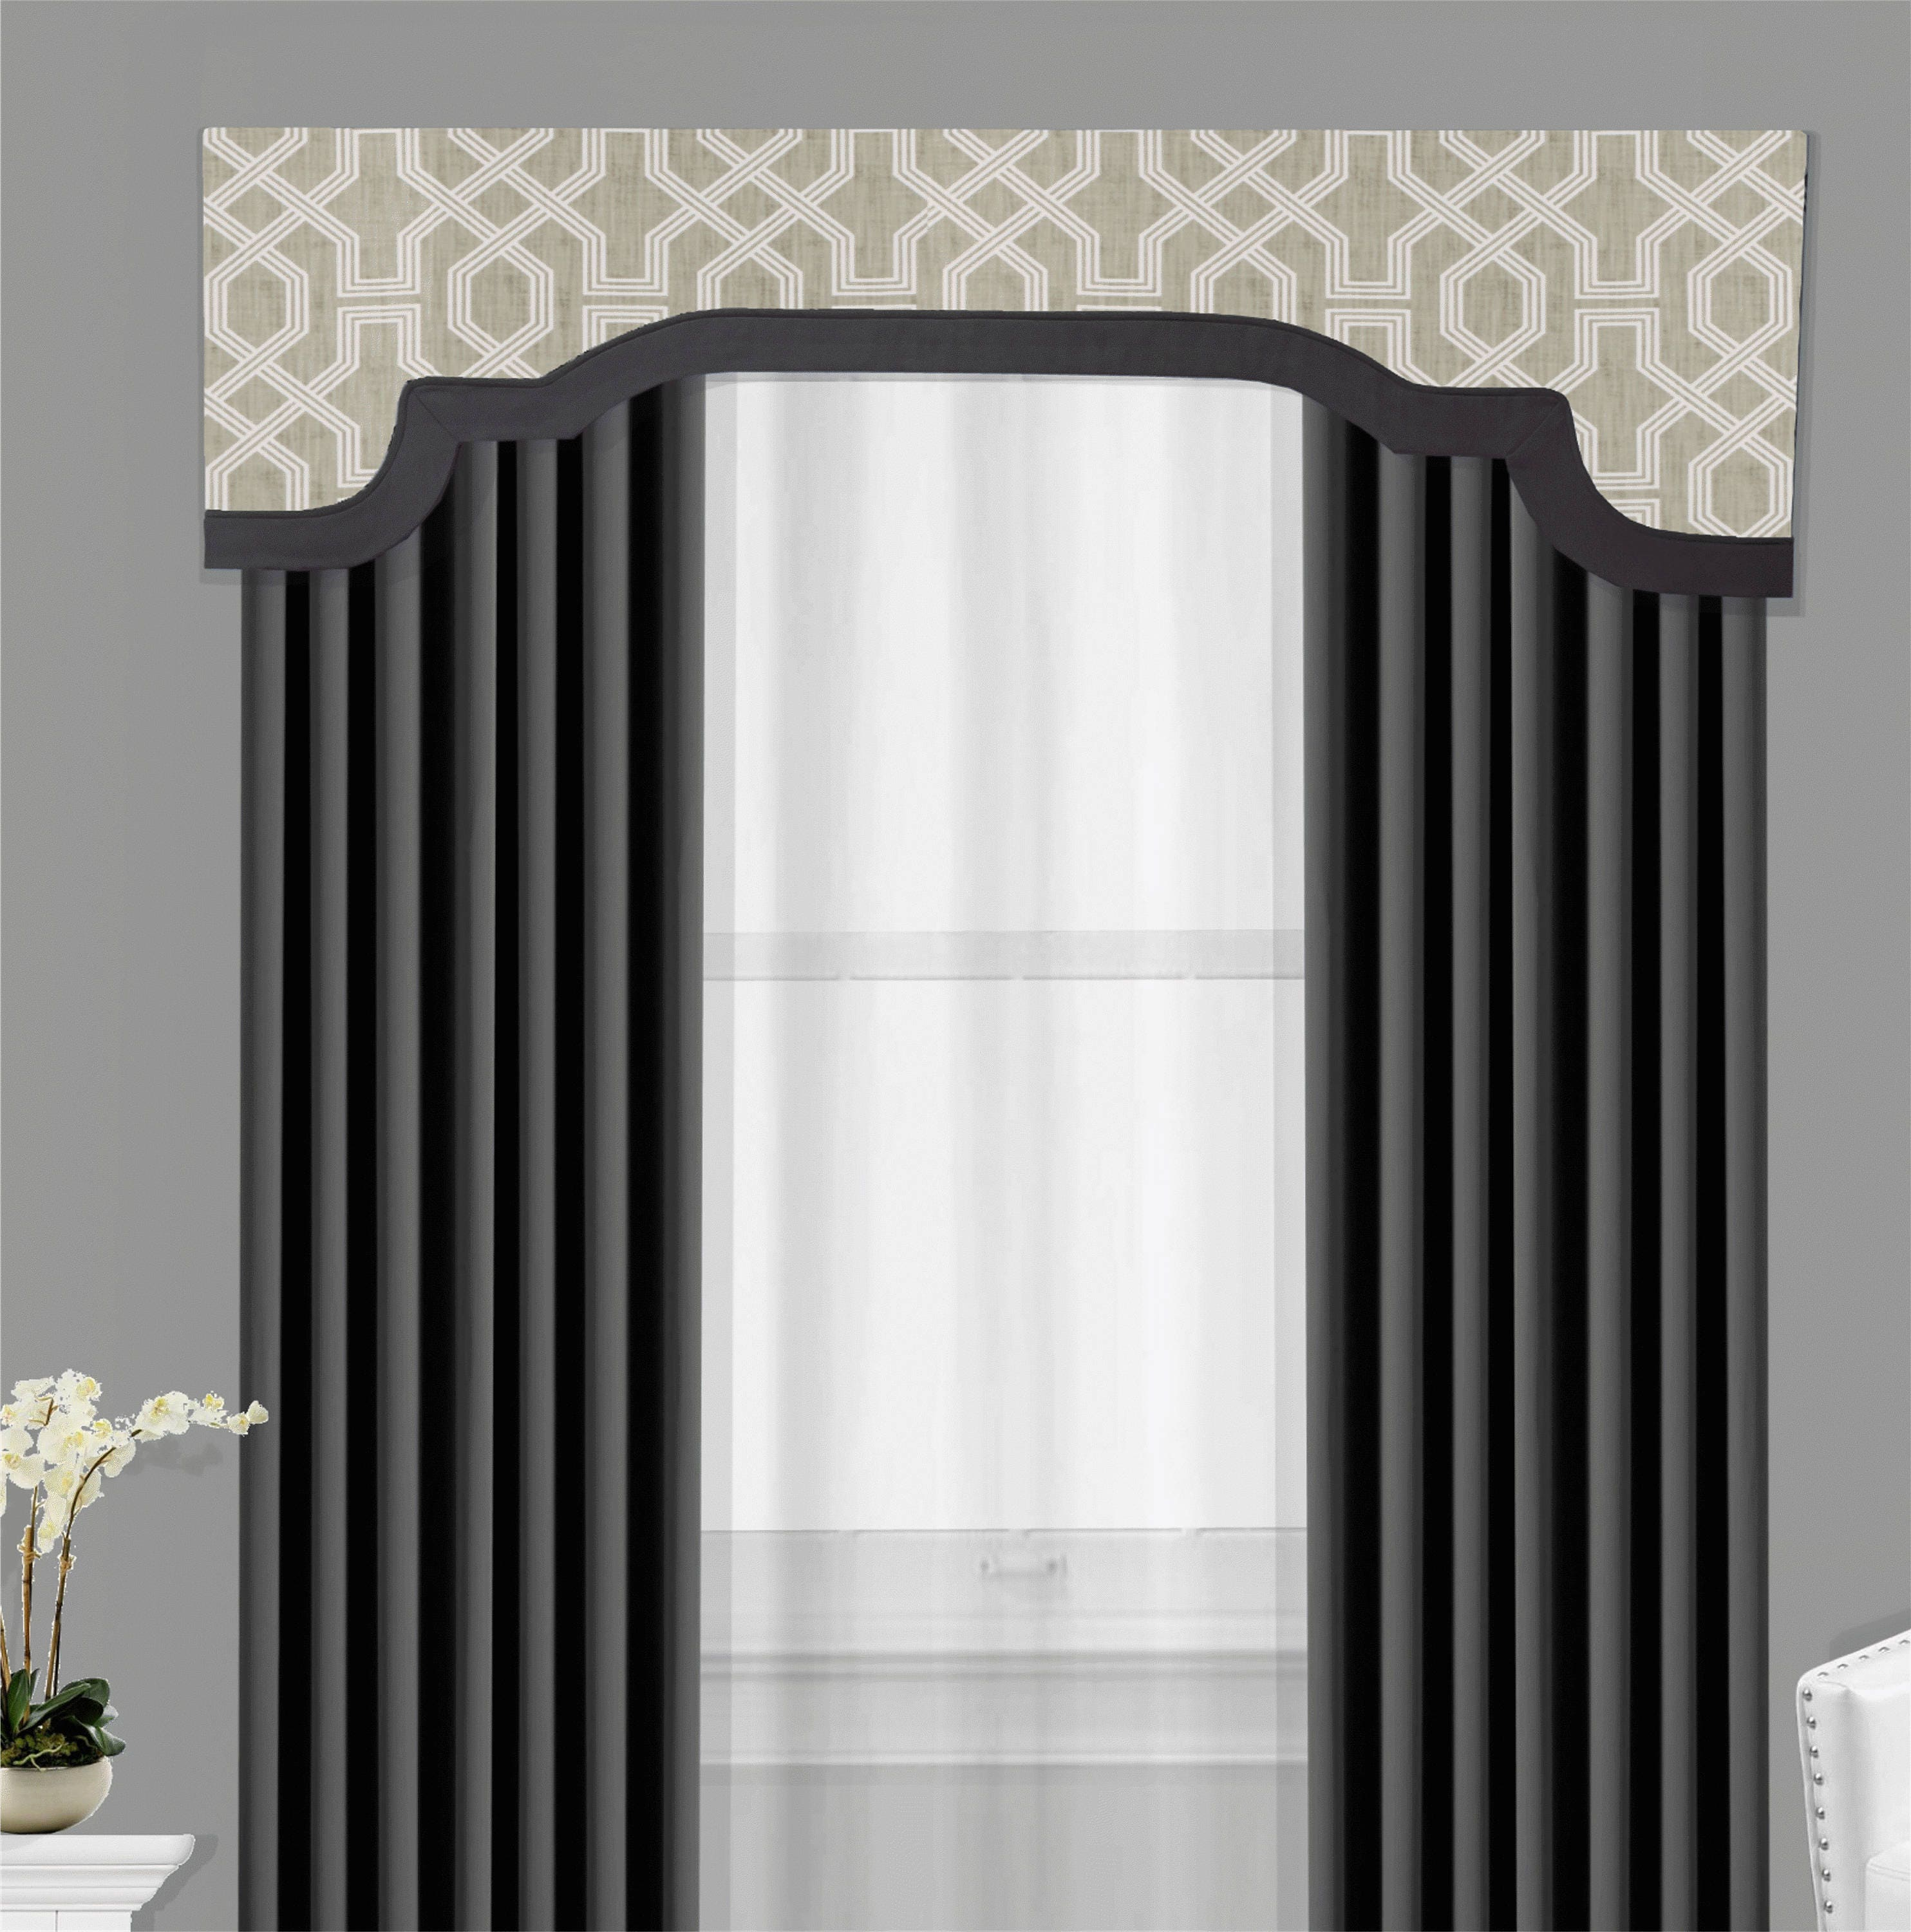 cornice a source valance blinds for vertical easy over window cornices t and diy valances